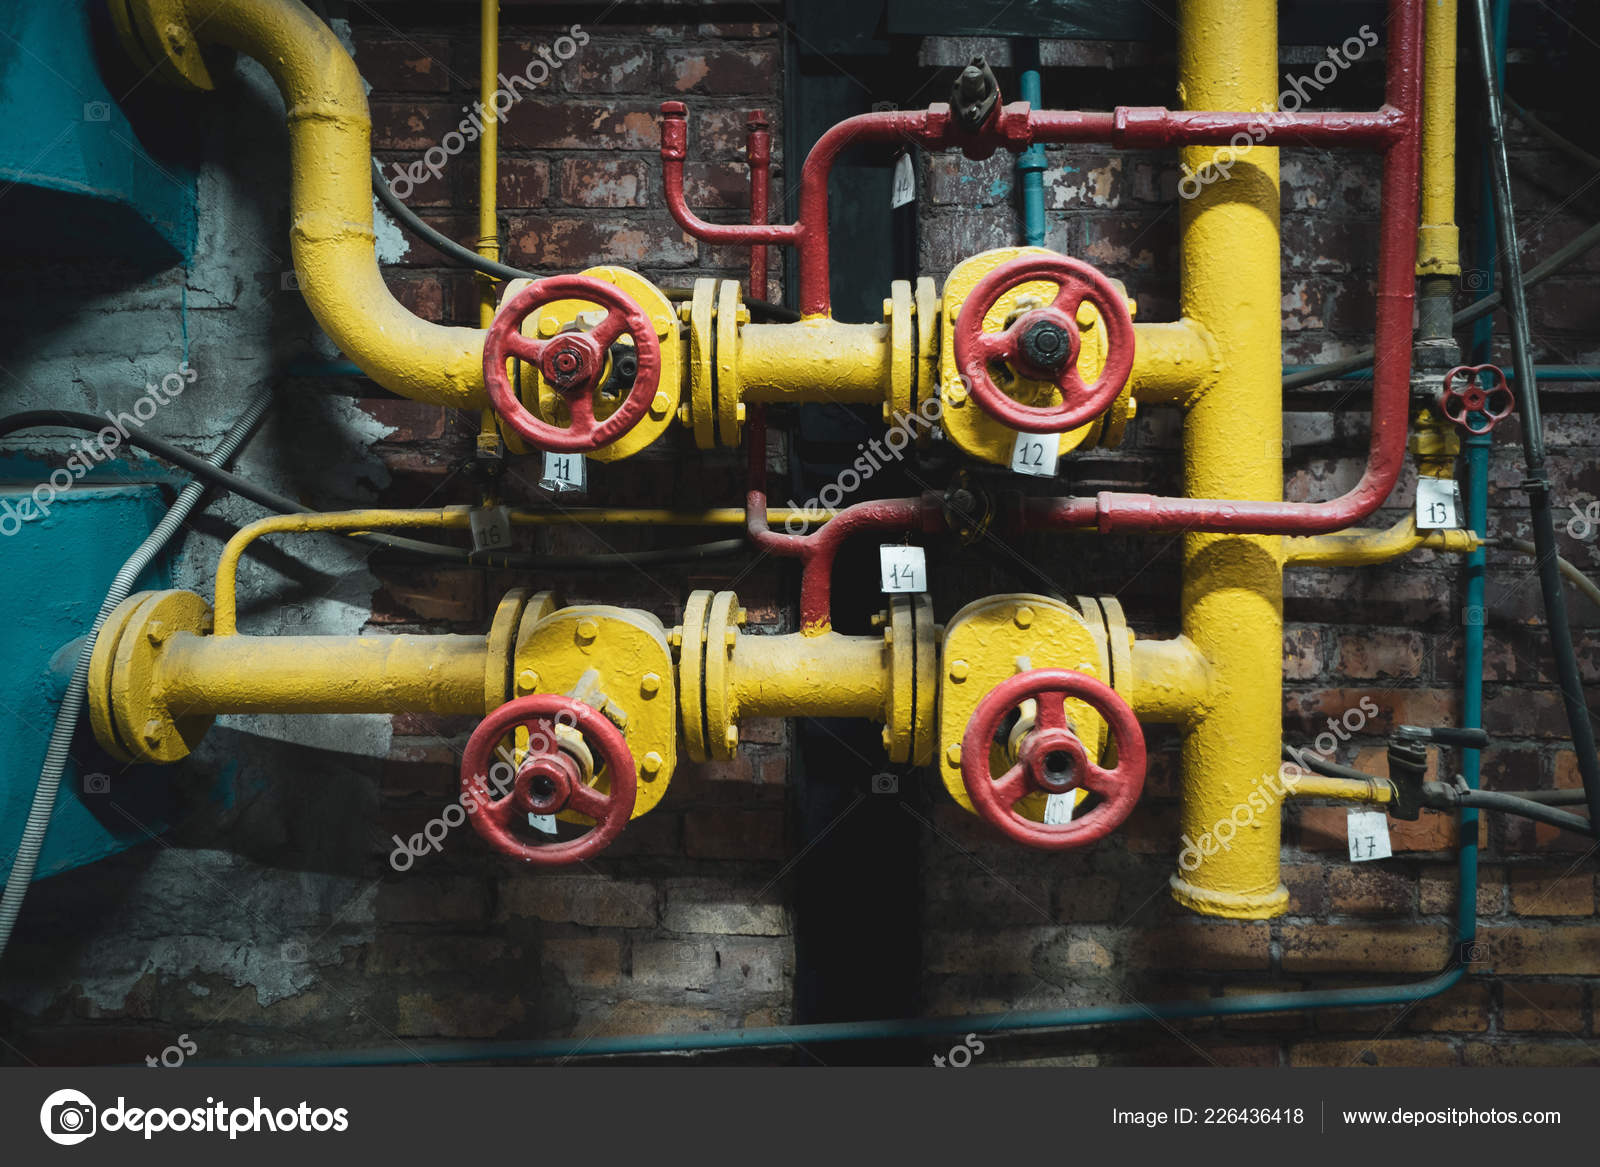 hight resolution of background vintage steampunk from steam pipes and pressure gauge stock image